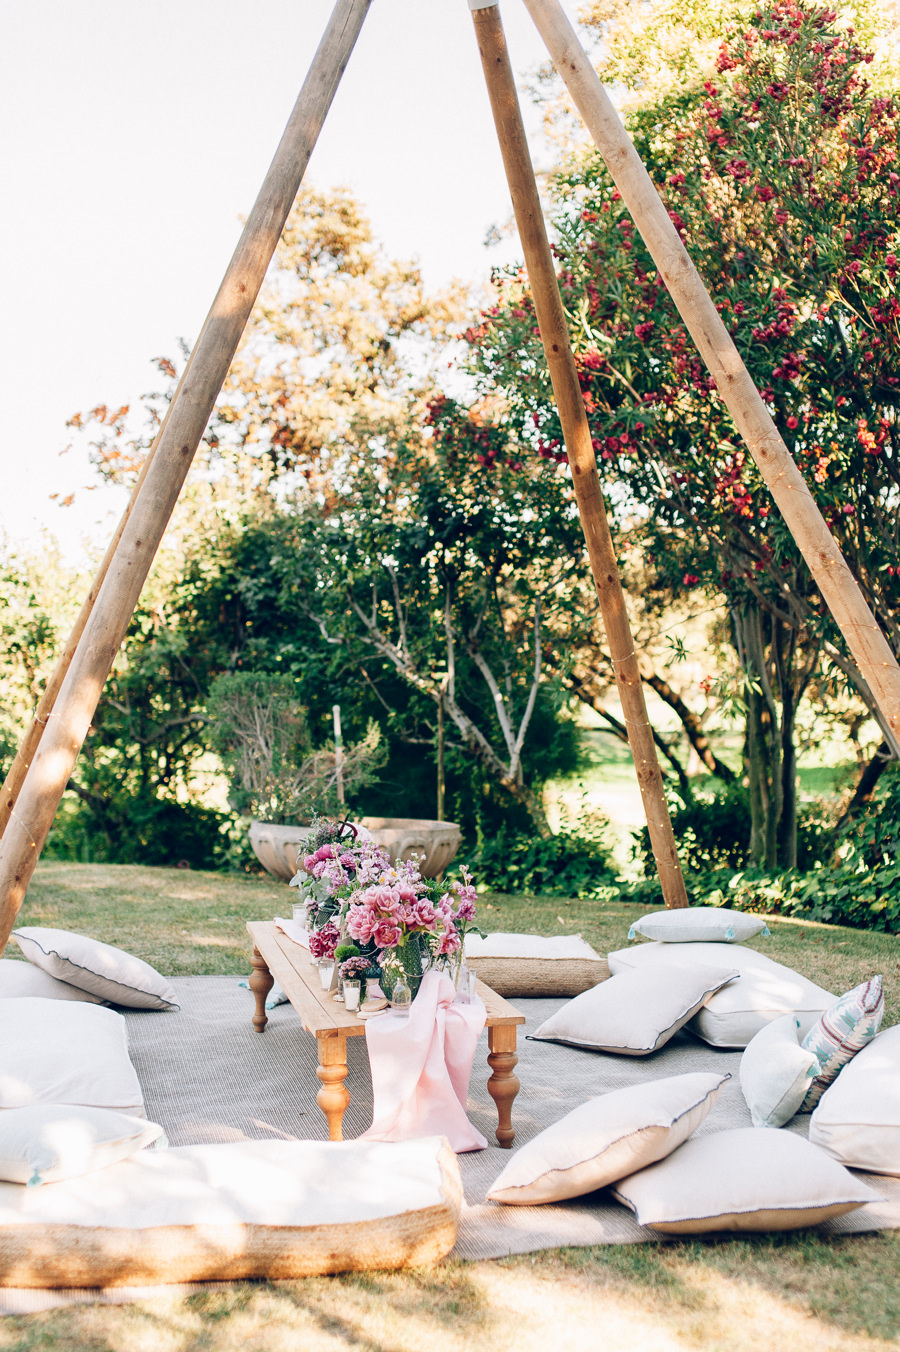 zona chill out cojines suelo tipis 5